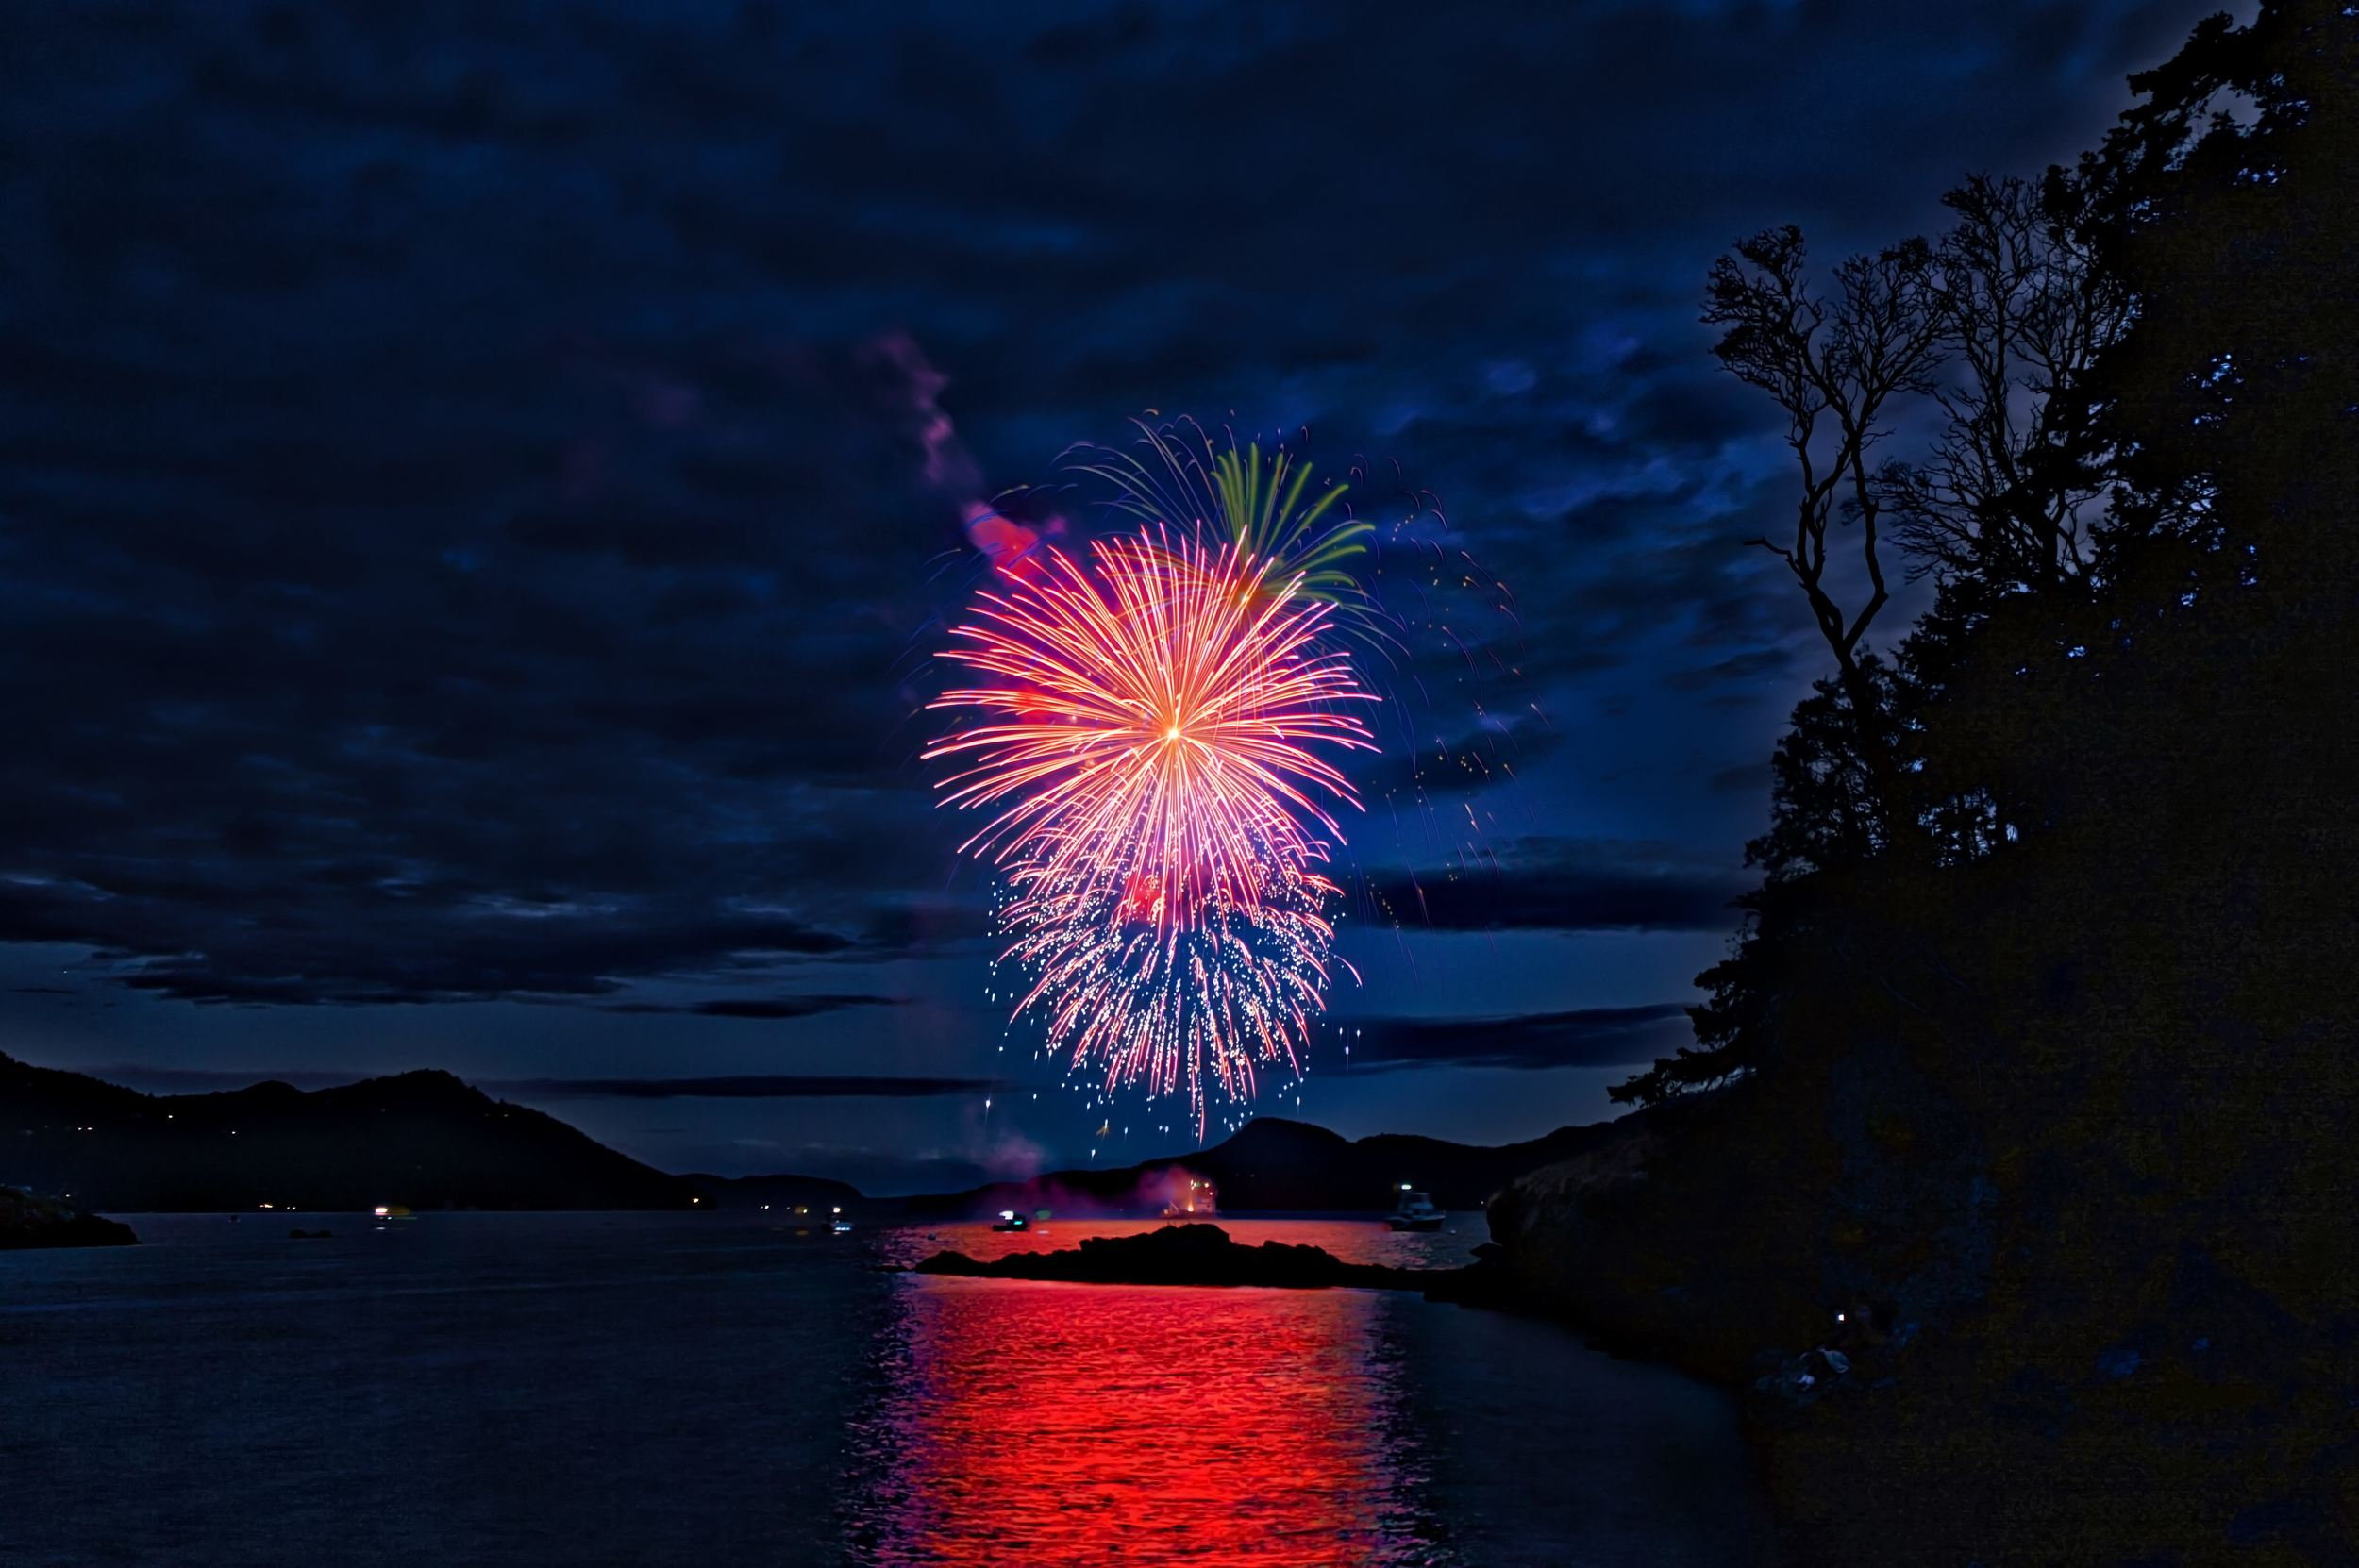 Fireworks in Eastsound on Orcas Island, July 4th.